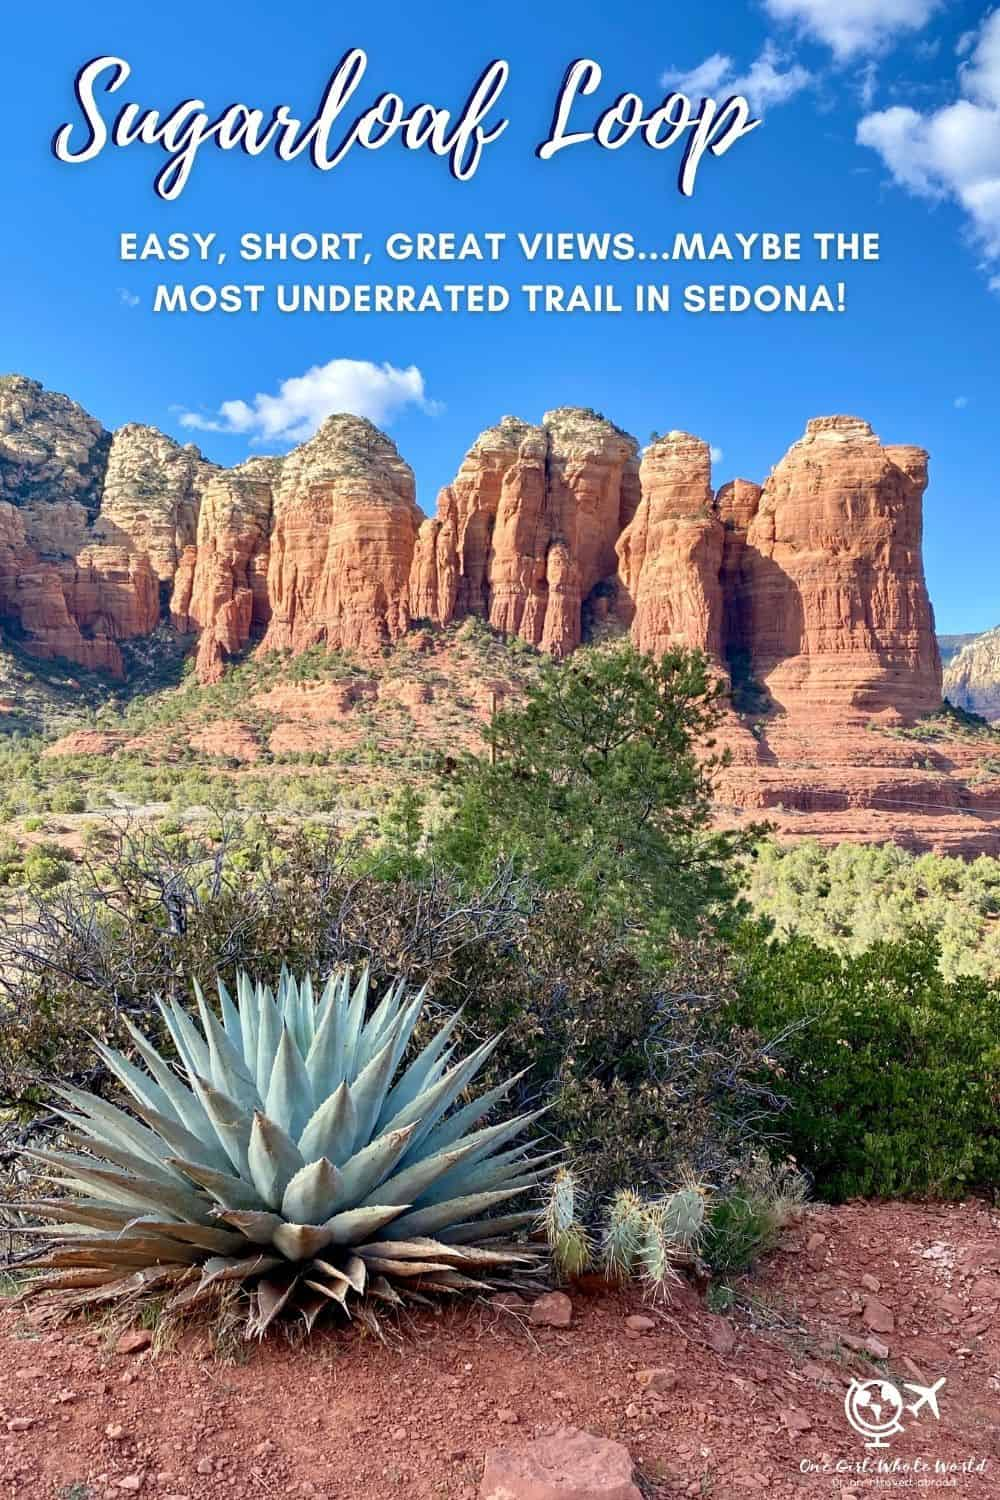 Sugarloaf Loop Trail...Maybe Sedona's Most Underrated Hike | If you're looking for a short, easy hike in Sedona with amazing views that's not too crowded, the Teacup Trail and Sugarloaf Loop and Summit are perfect for you! Sedona trail ideas, best Sedona hikes, easy Sedona hikes, Sedona sunrise hike. #sugarloafloop #sedona #arizonahikes #girlstrip